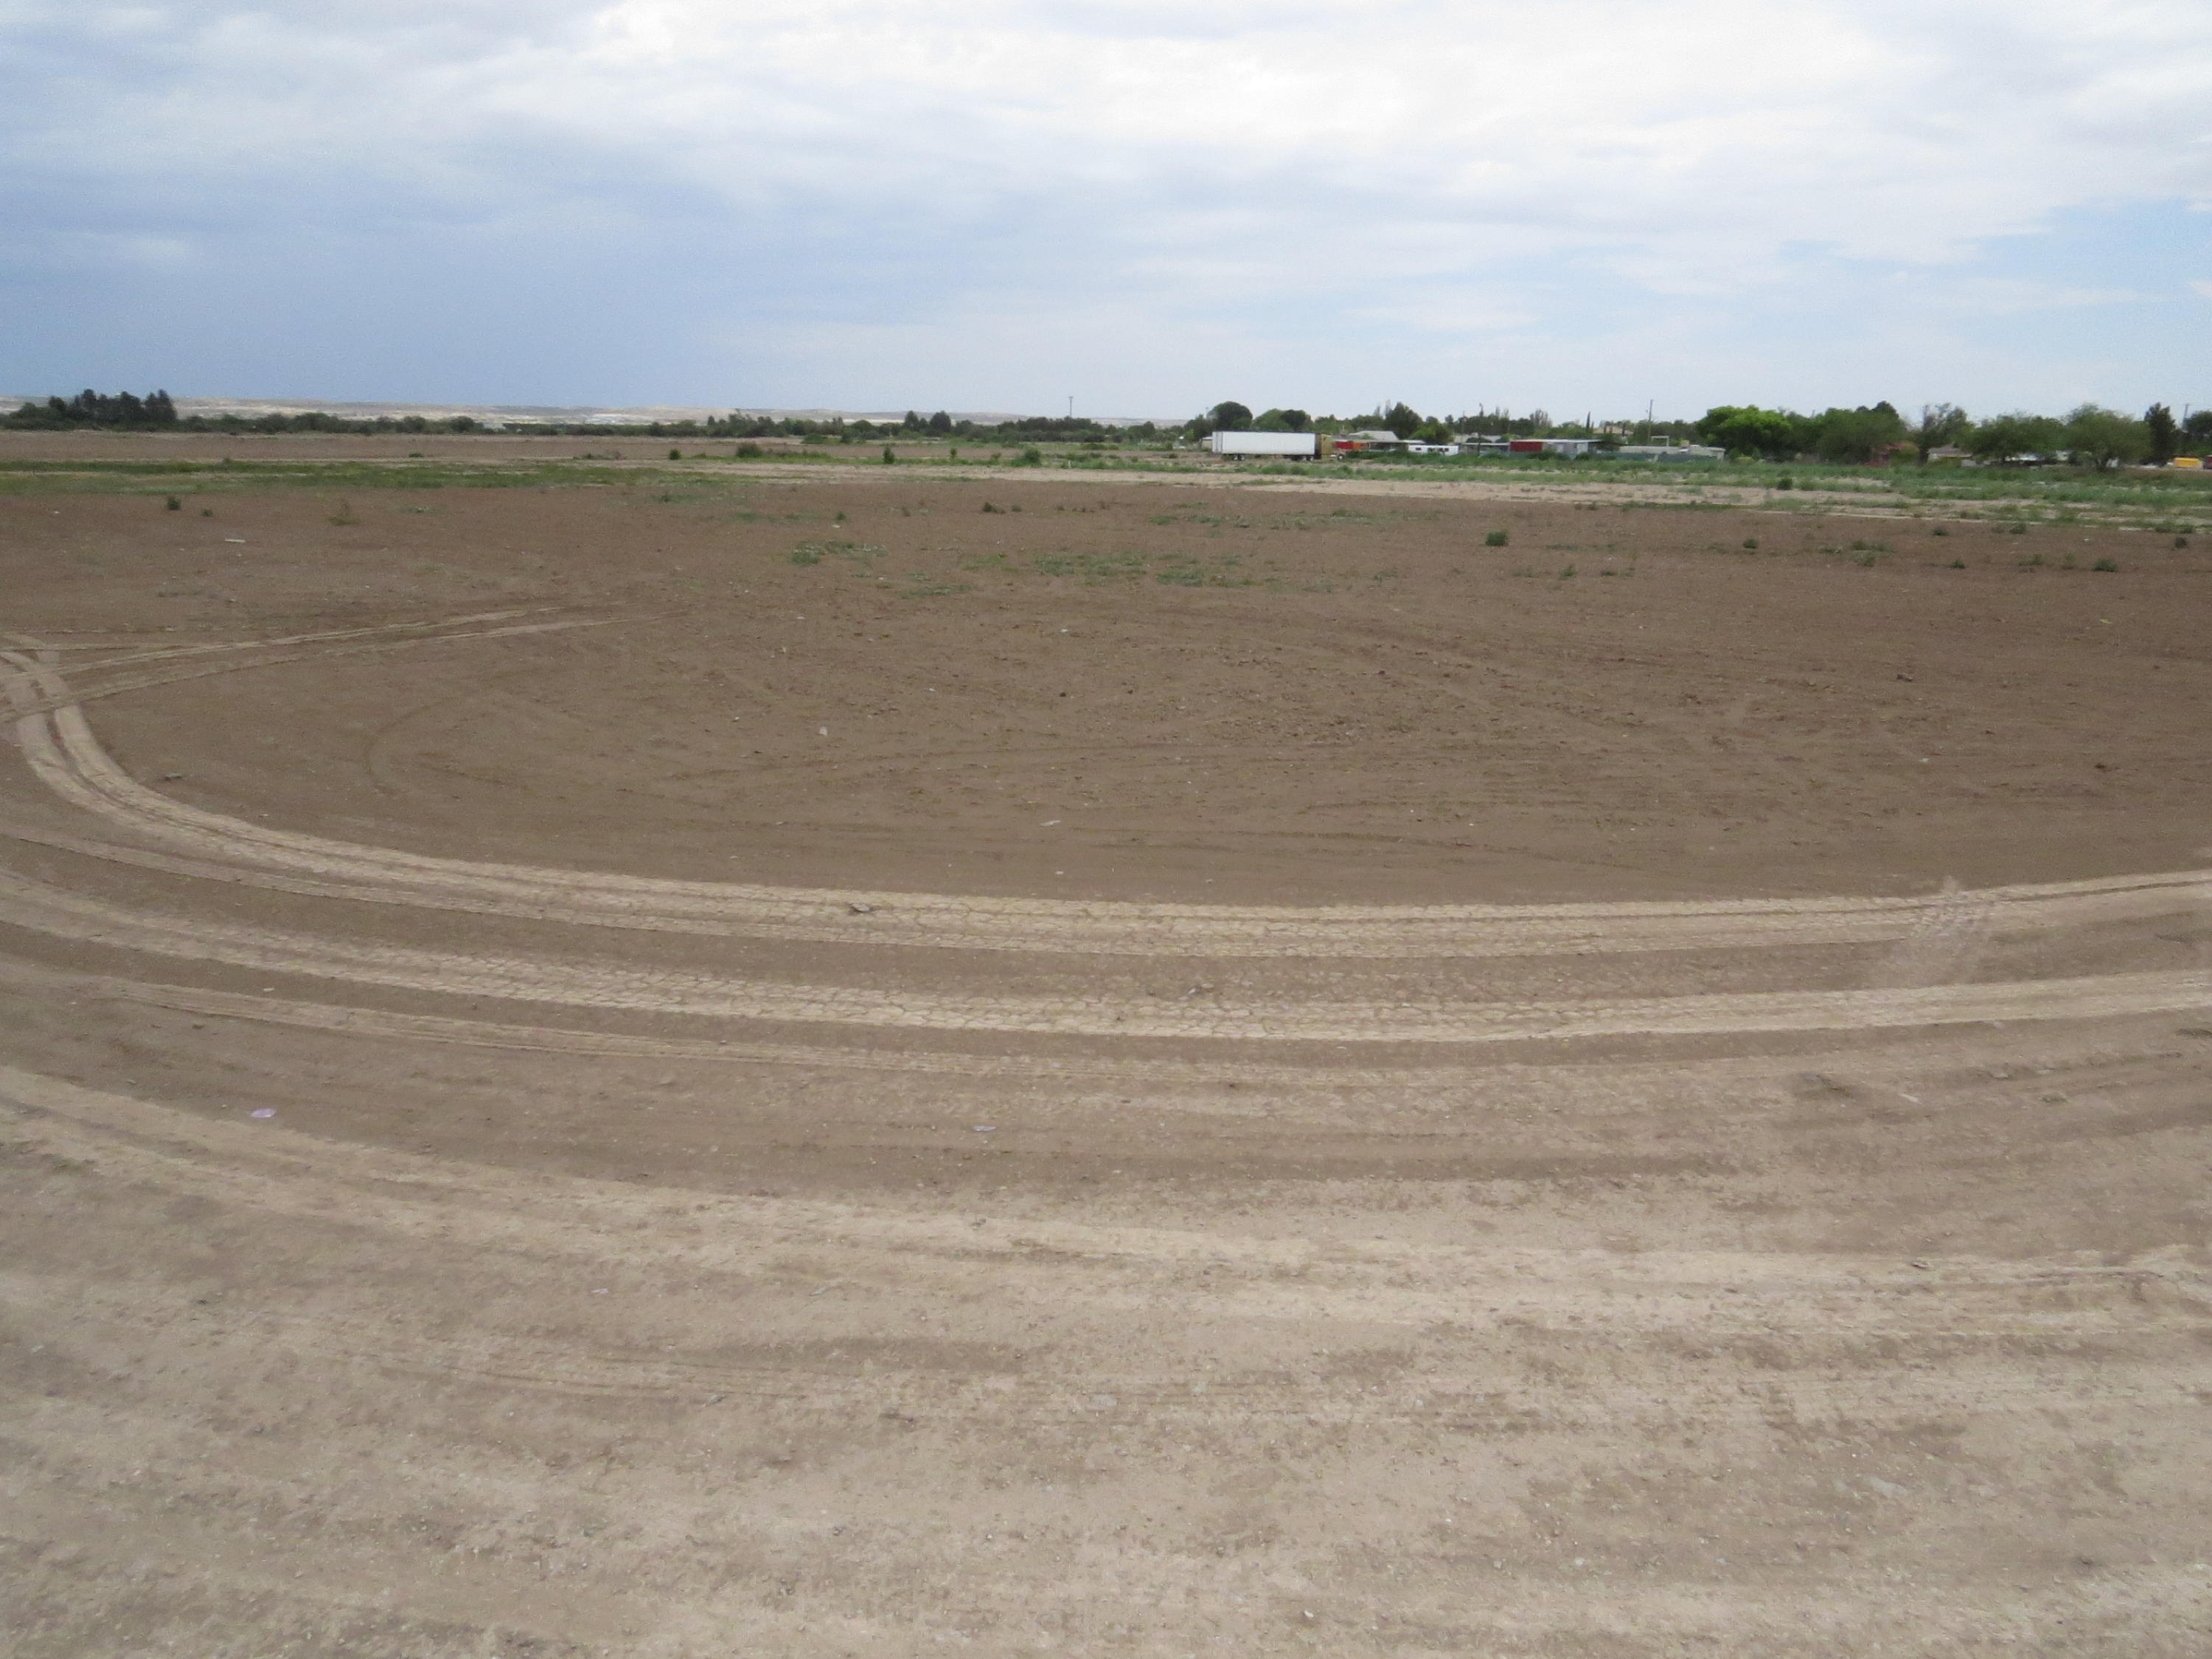 TBD TBD, San Elizario, Texas 79849, ,Land,For sale,TBD,813886